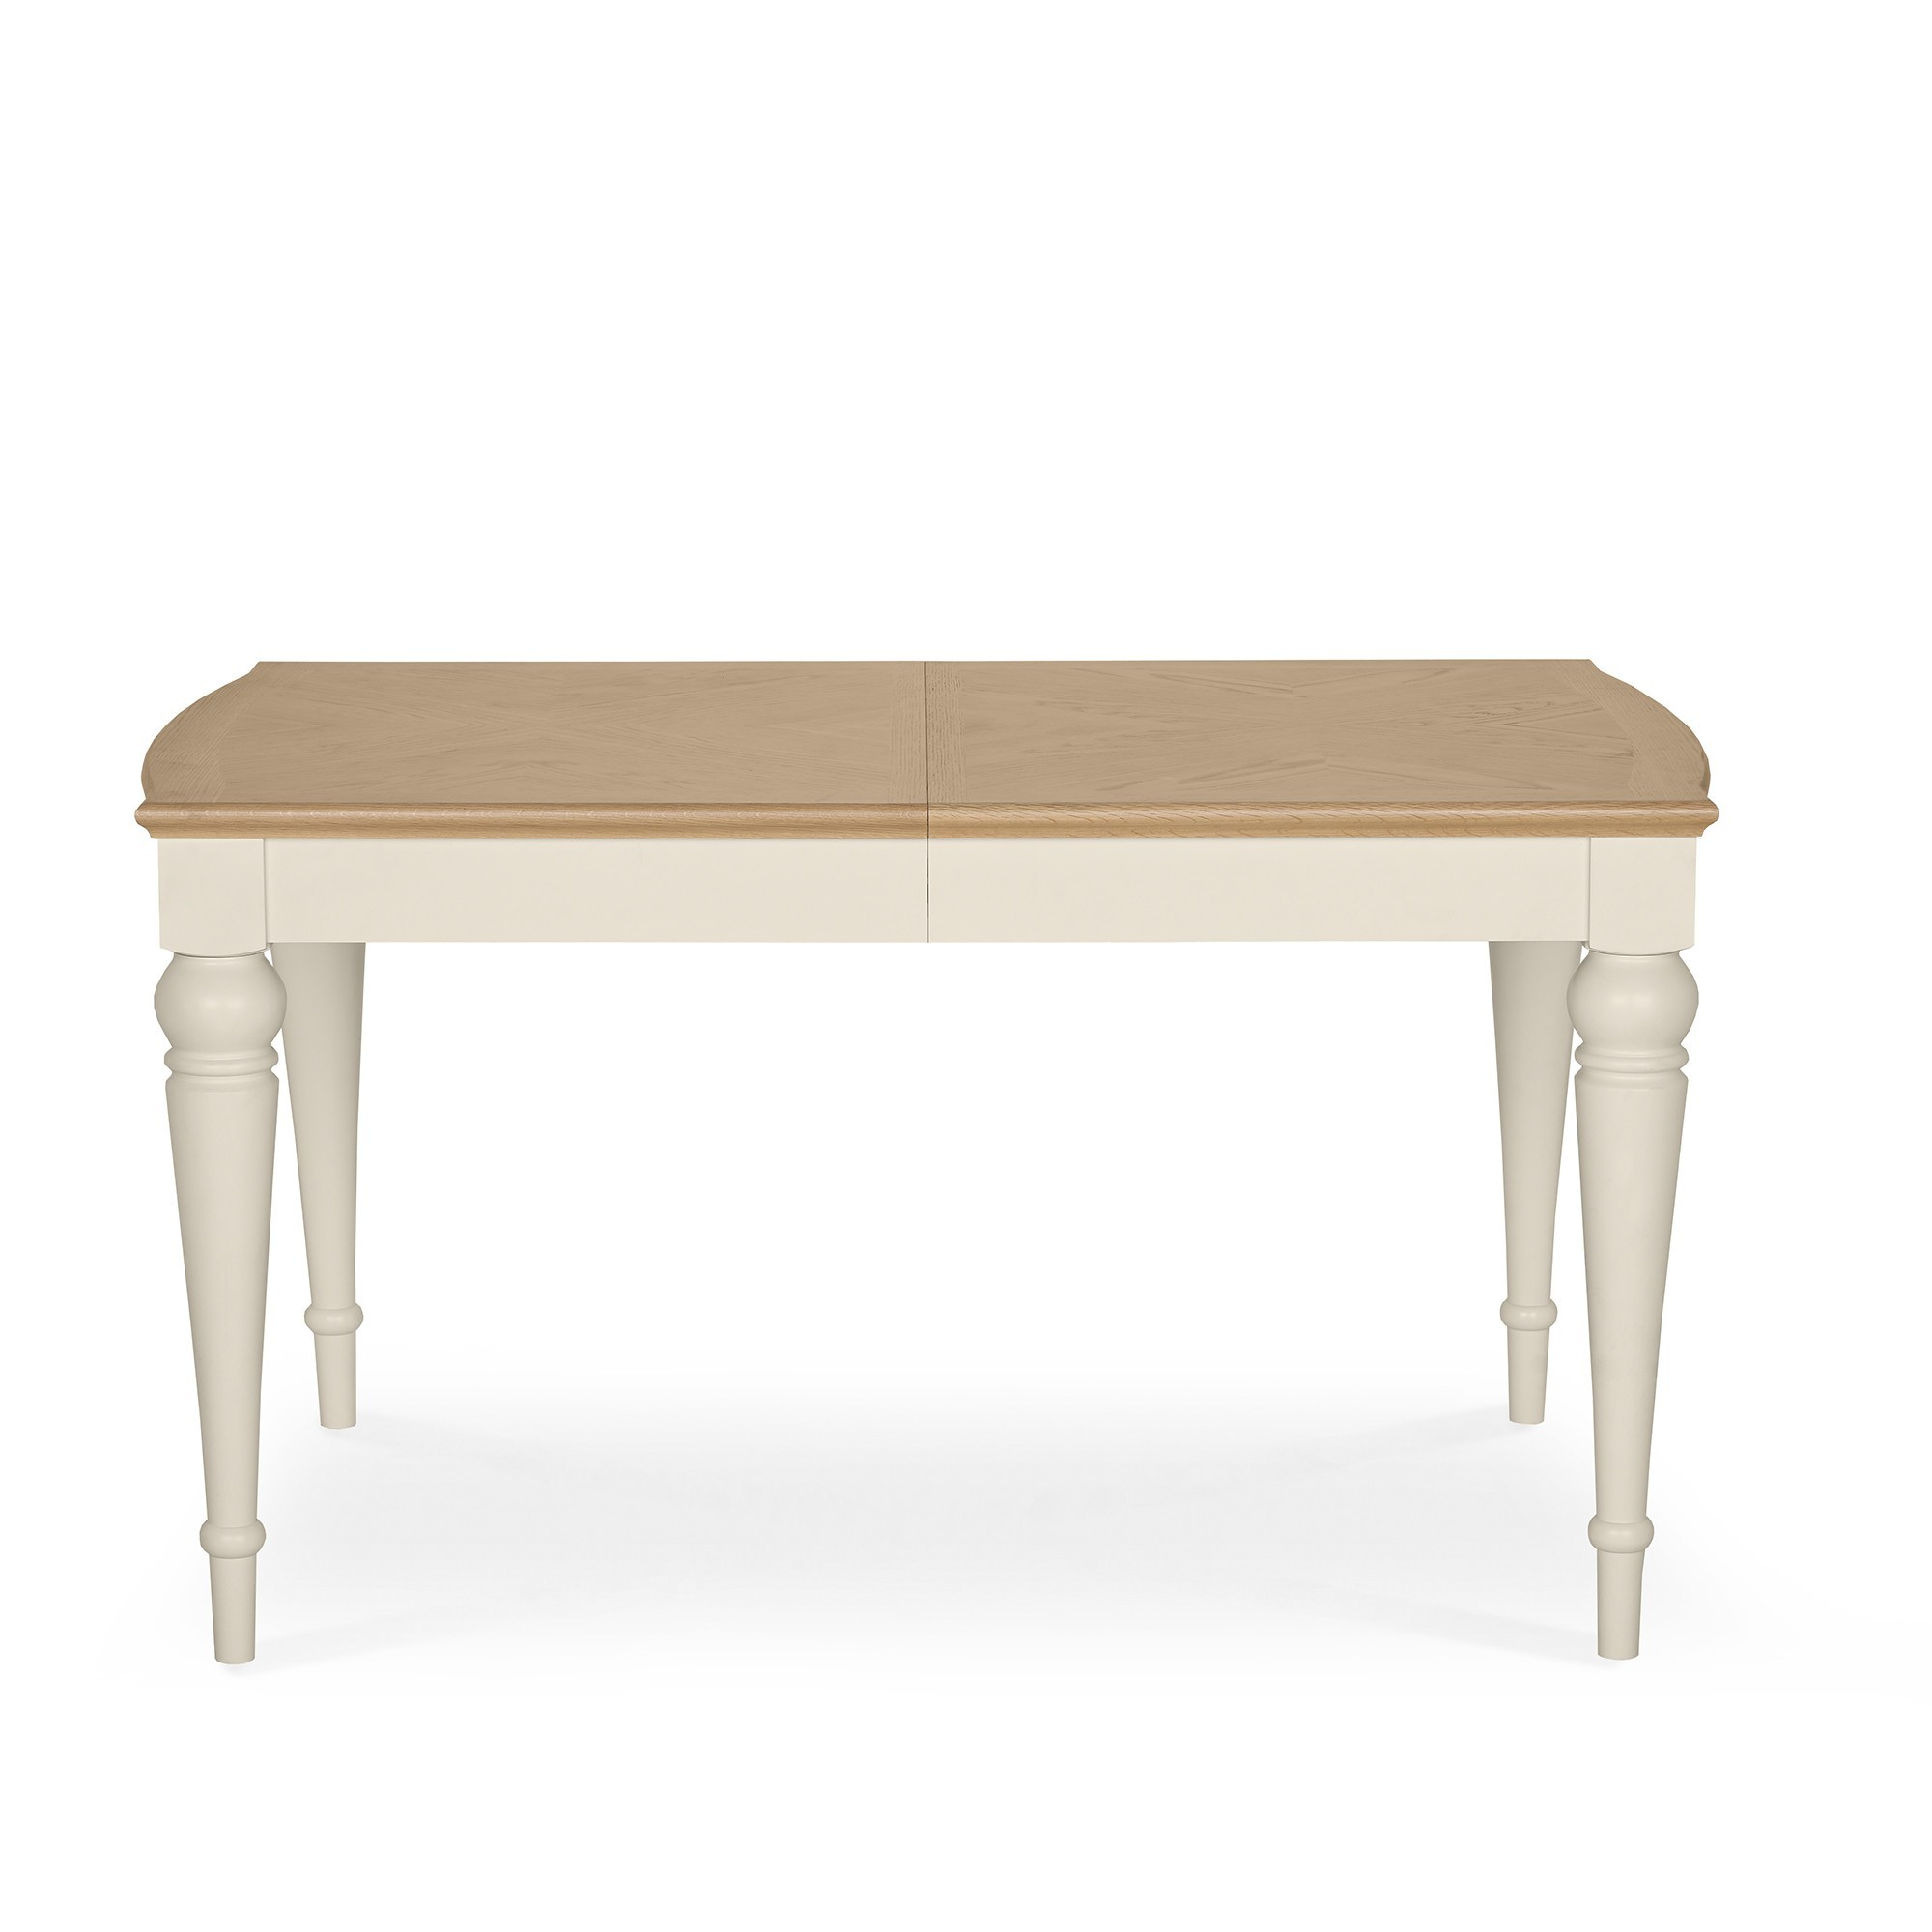 Extending Oak Table Cookes Collection Geneva Oak And Antique White 6 8 Extending Dining Table